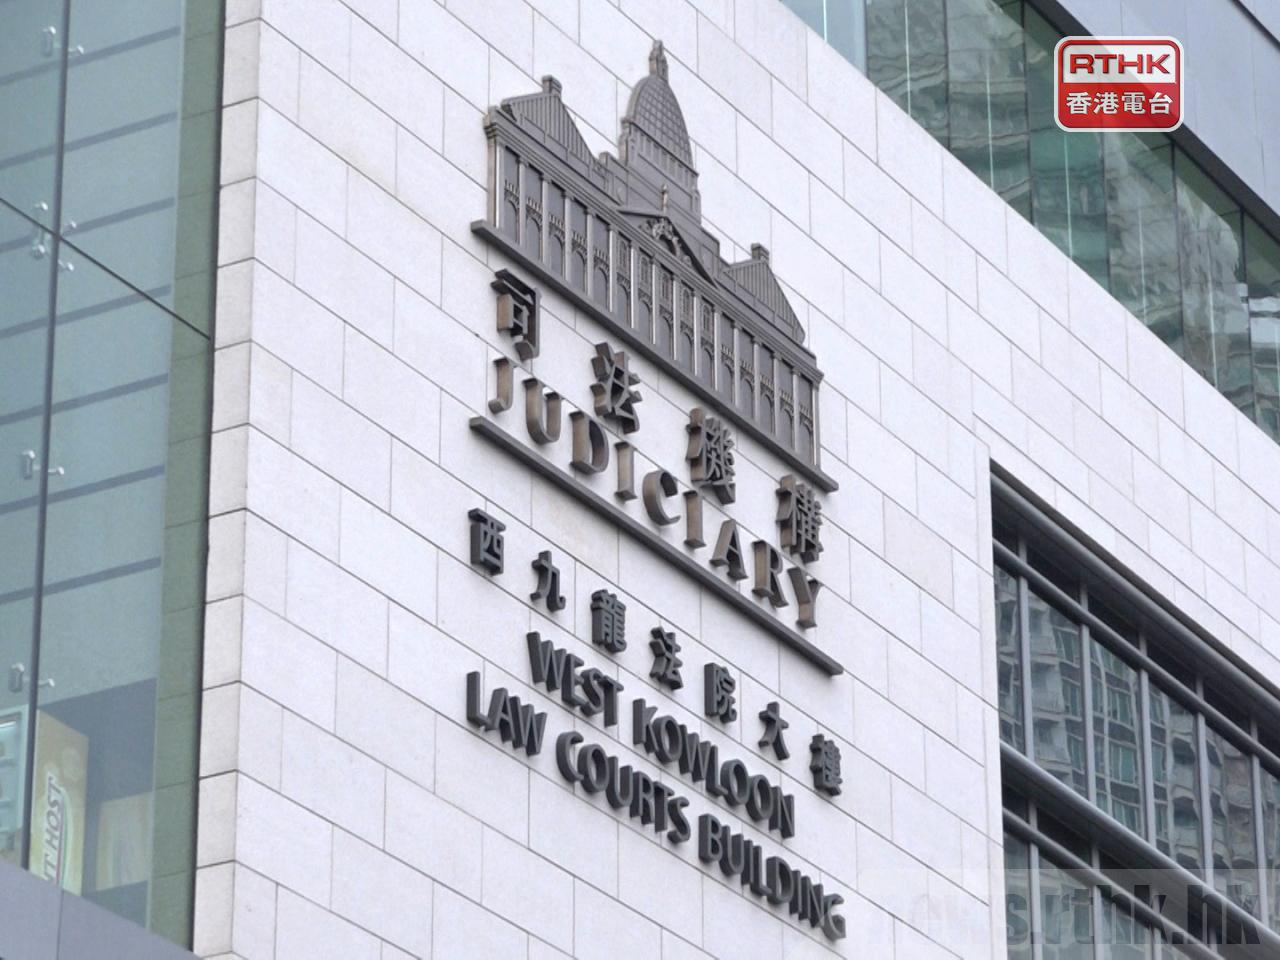 The West Kowloon Court said prosecutors had been unable to prove their case beyond reasonable doubt. File photo: RTHK